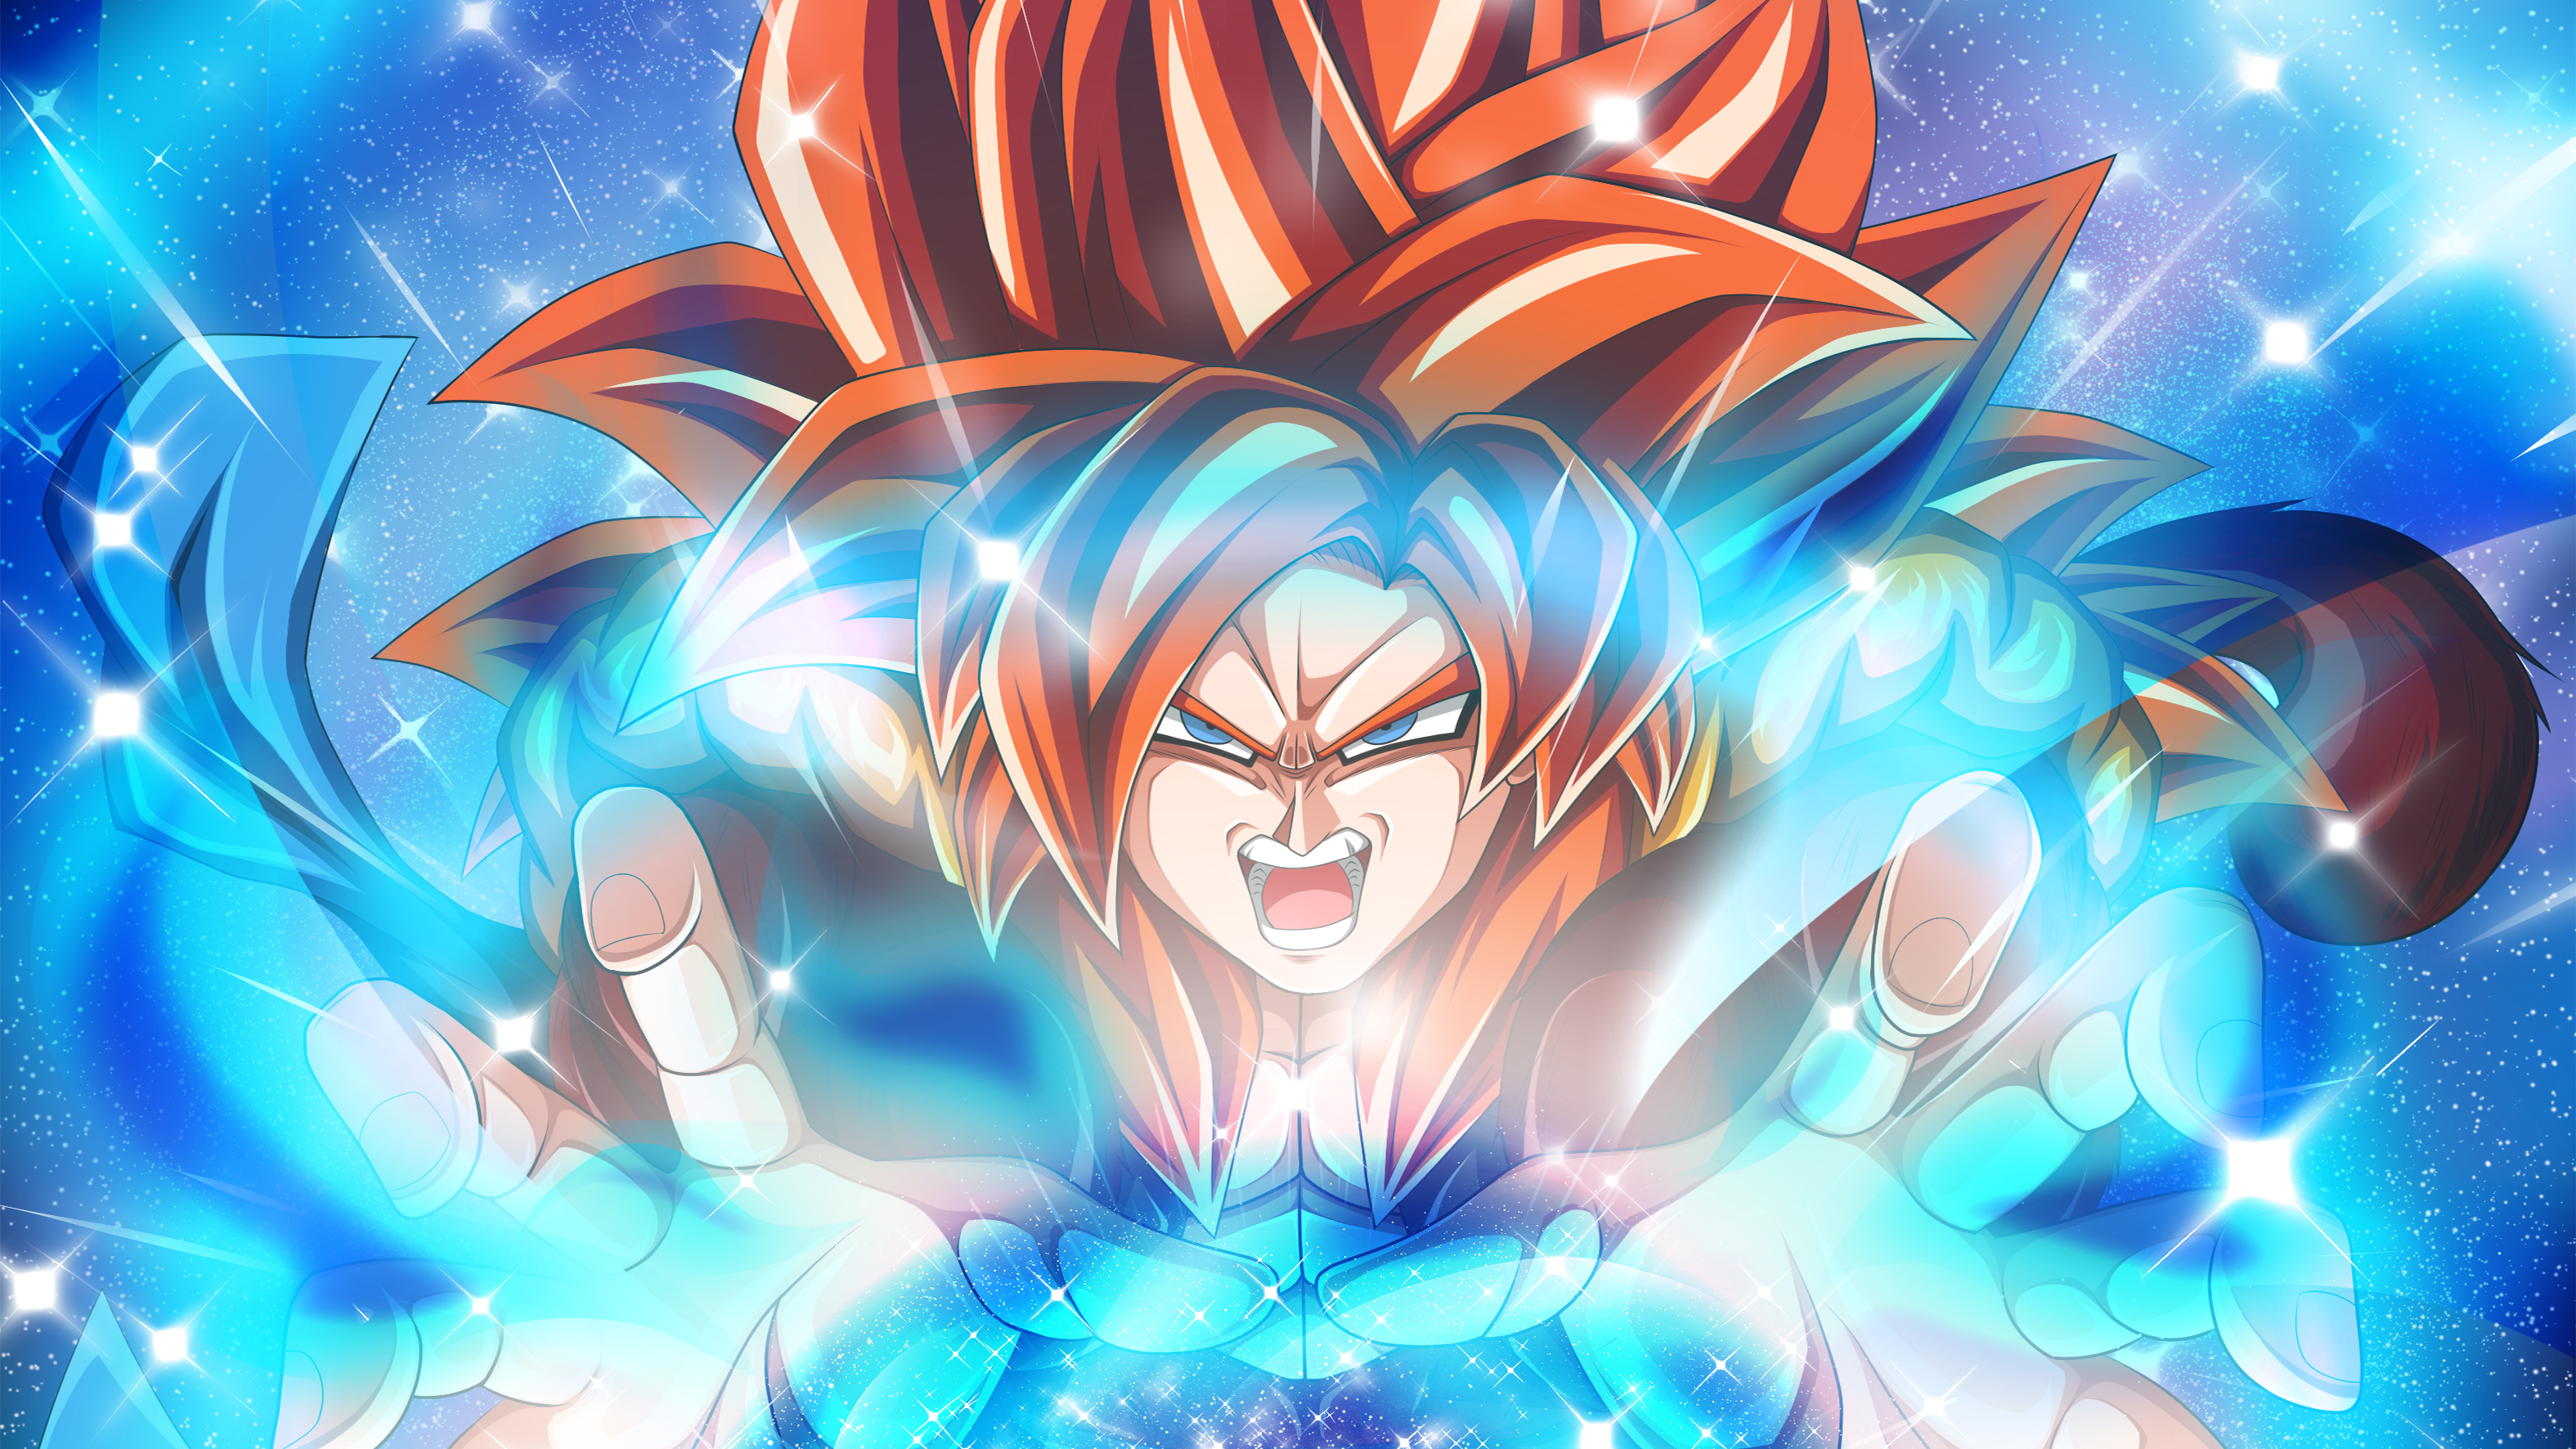 Dragon Ball Super Saiyan 4 Anime 4k, HD Games, 4k Wallpapers, Images,  Backgrounds, Photos and Pictures